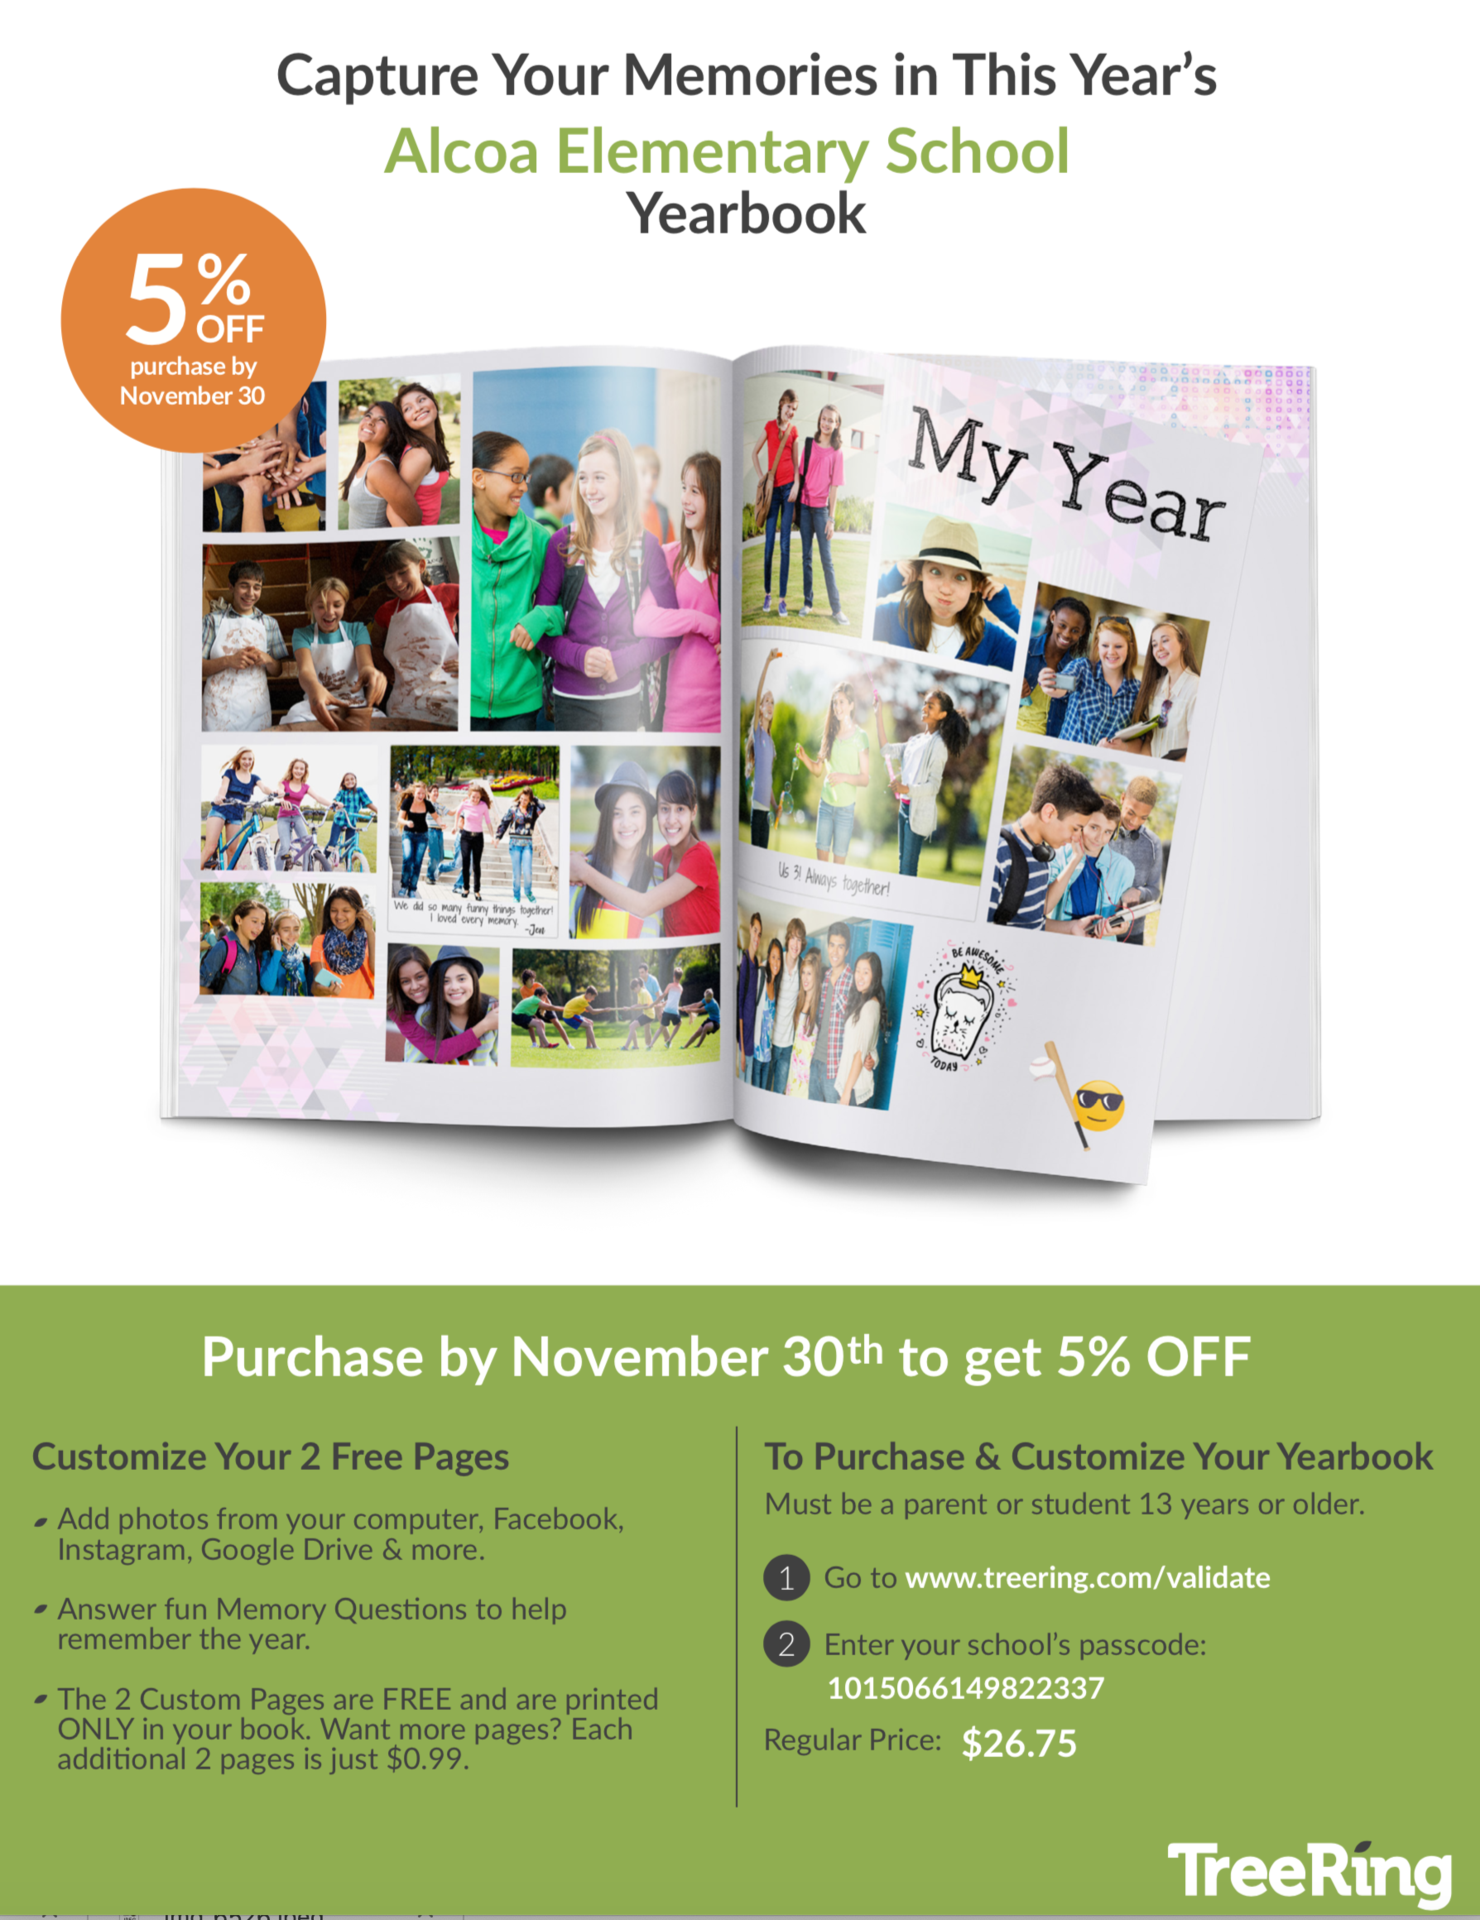 Save 5% when you order before November 30th